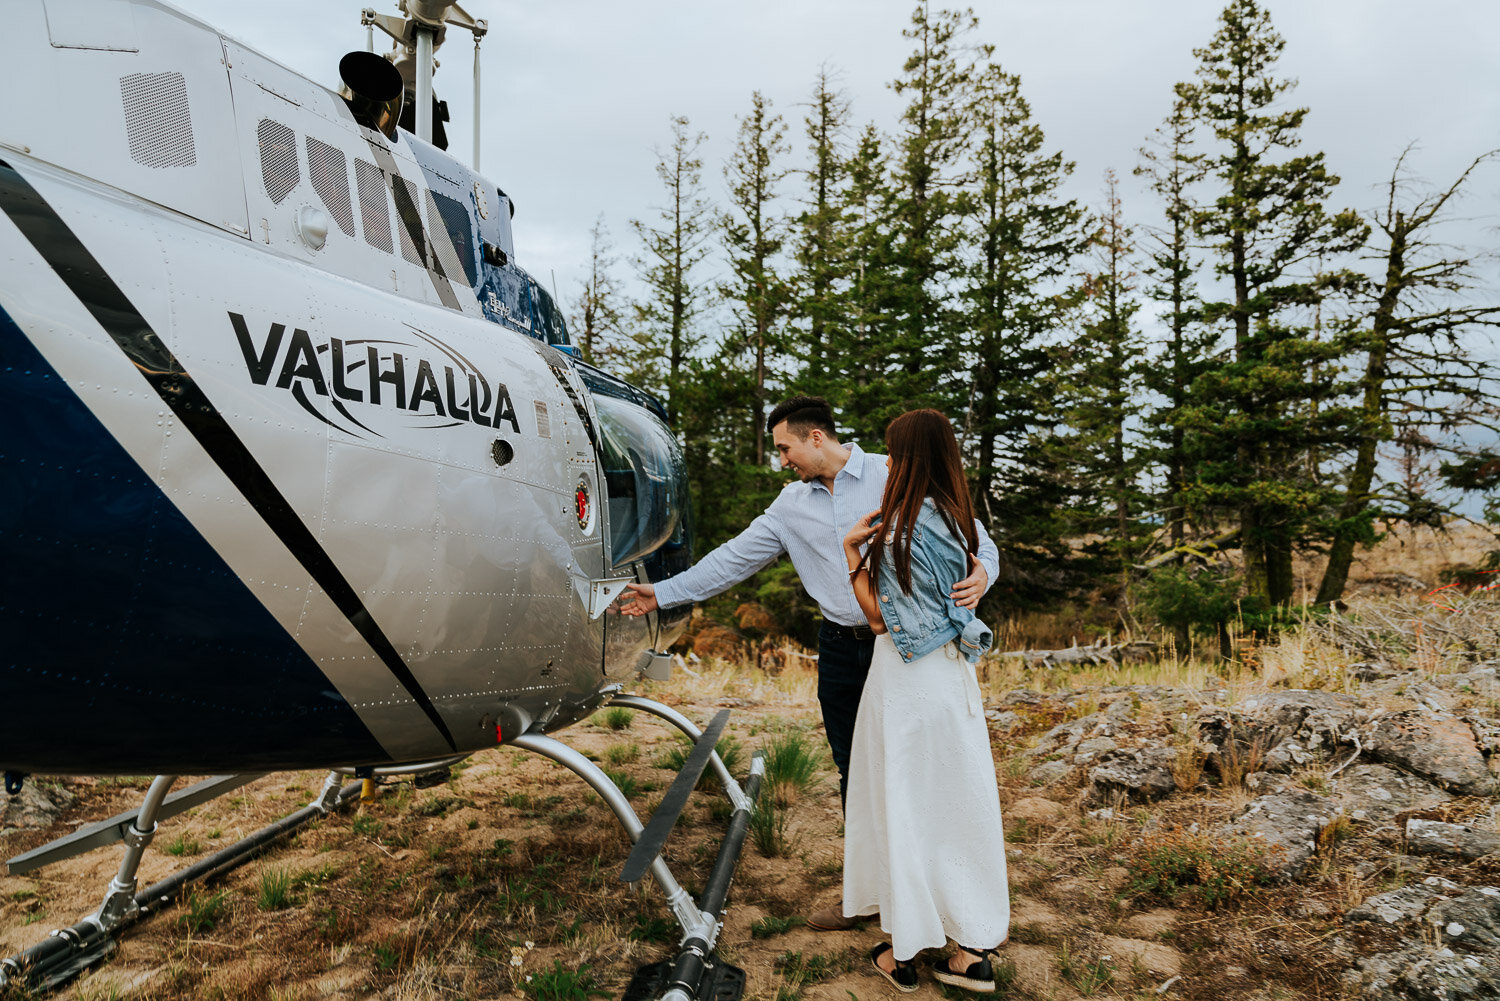 kelowna-helicopter-engagement-shoot-26.jpg